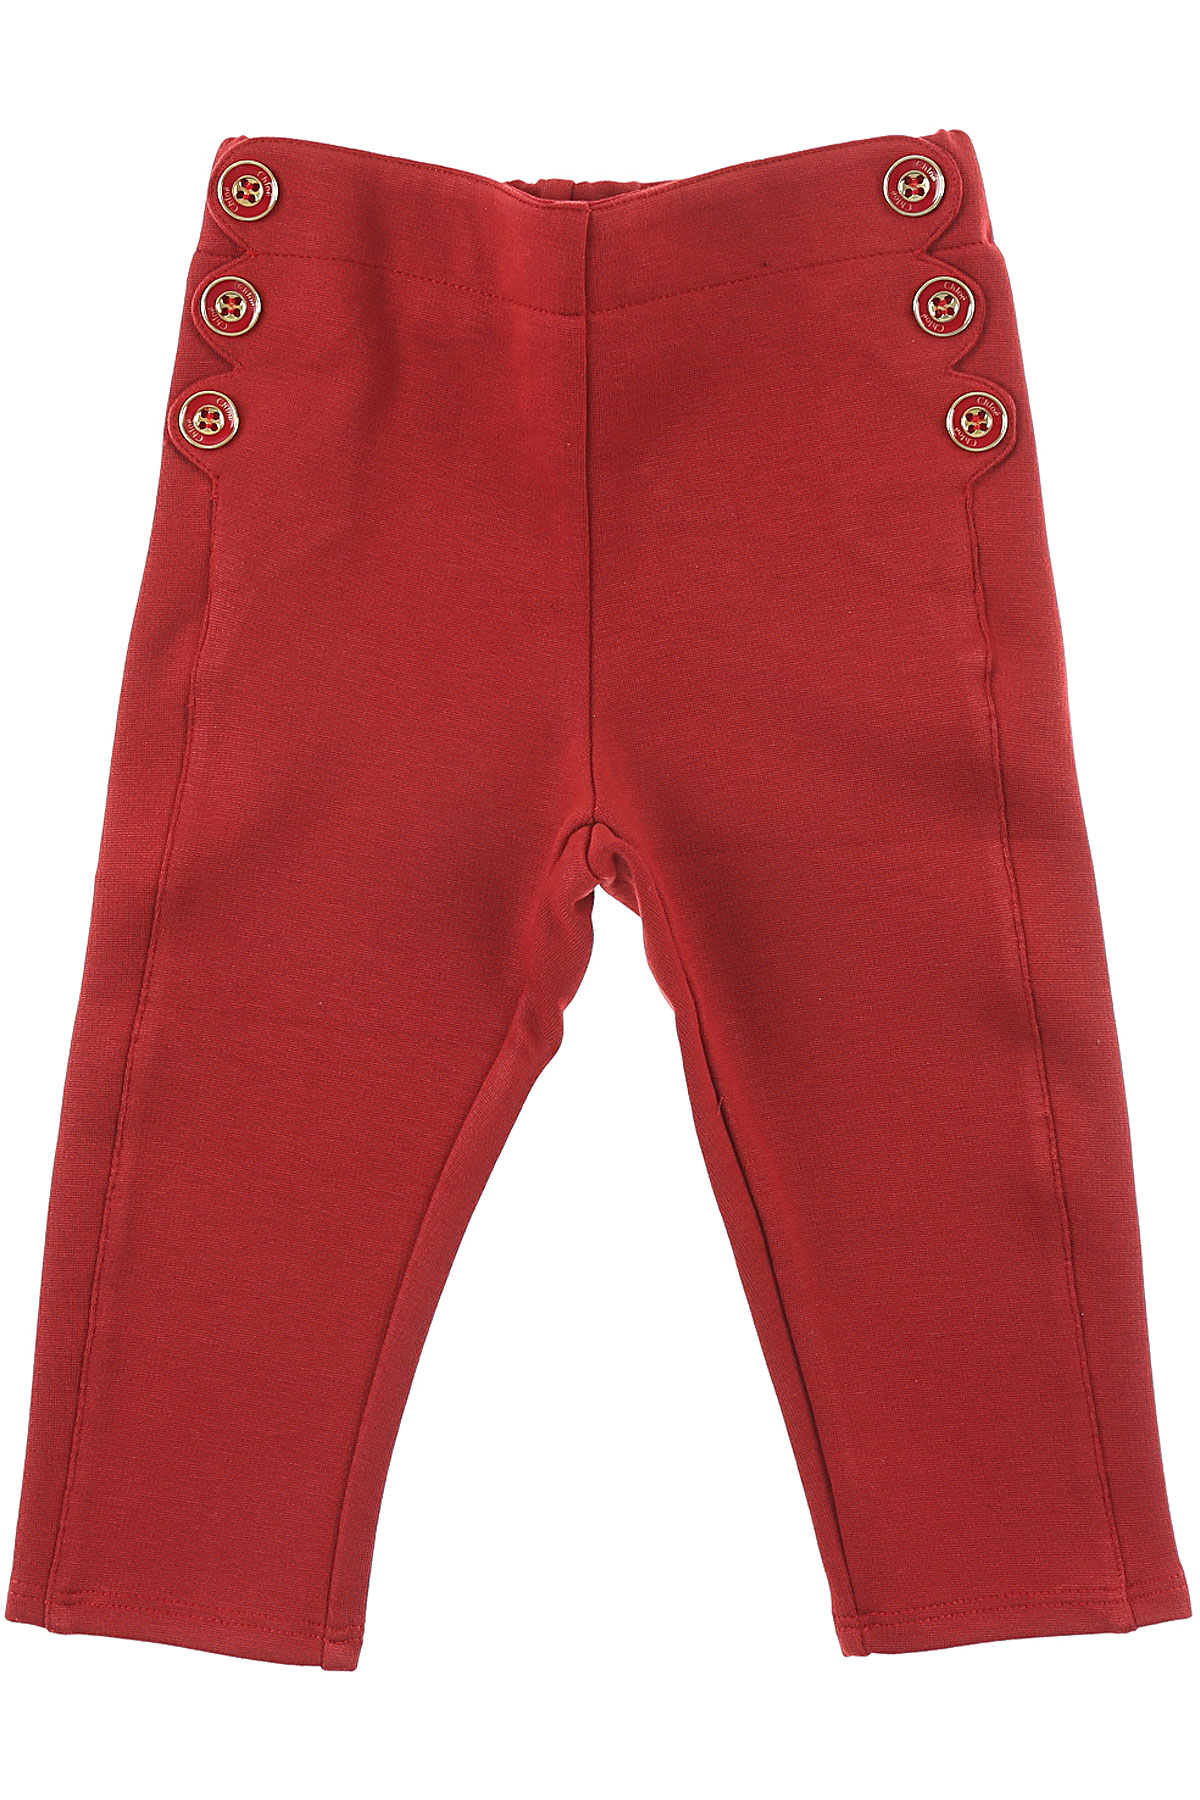 Image of Chloe Baby Pants for Girls, Amaranth, Cotton, 2017, 12M 18M 2Y 3Y 6M 9M